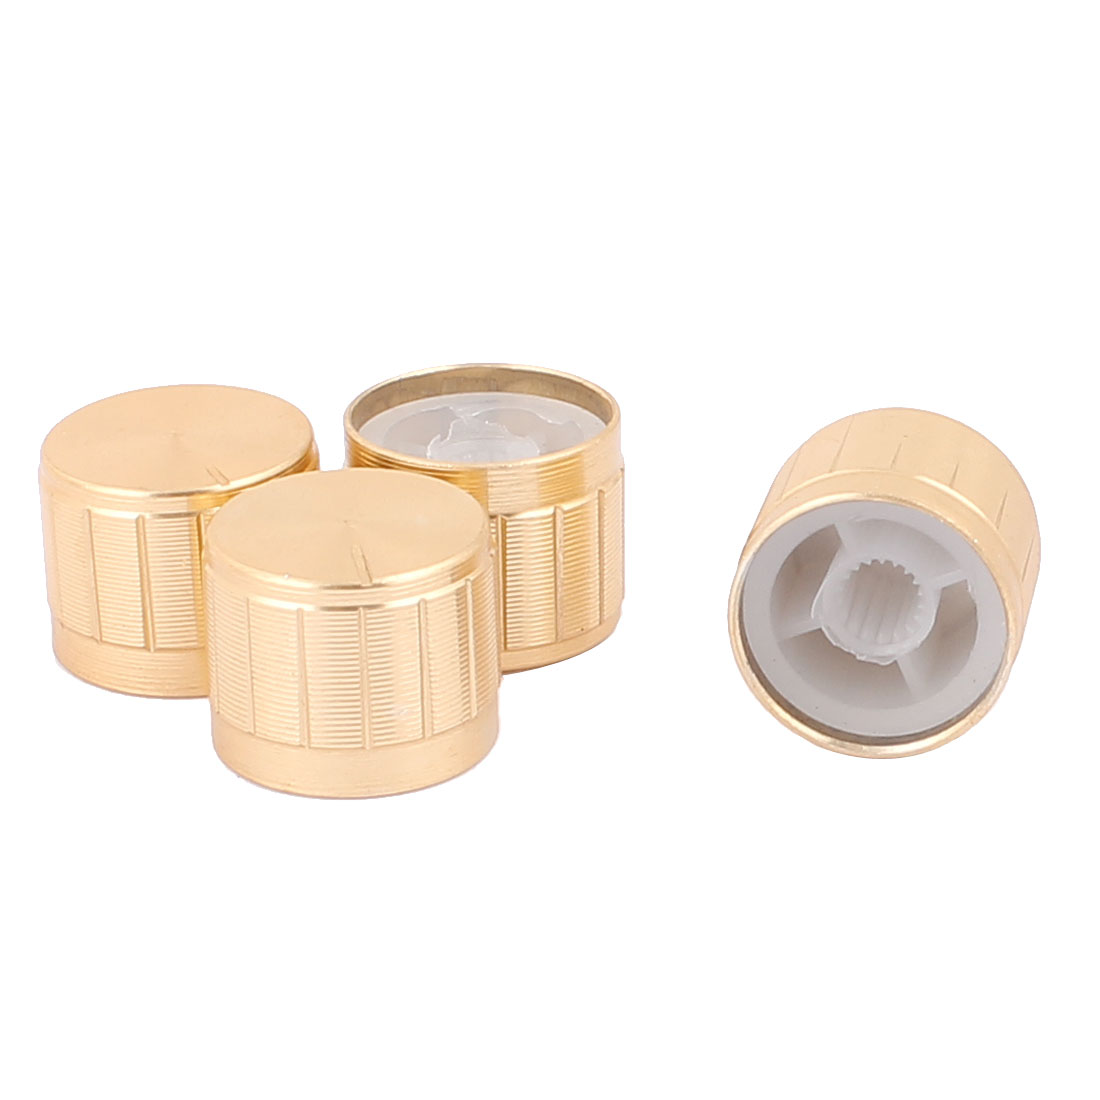 4 Pcs 21mm x 6mm Aluminium Alloy Potentiometer Control Knob Mini Cap Knurled Button Gold Tone